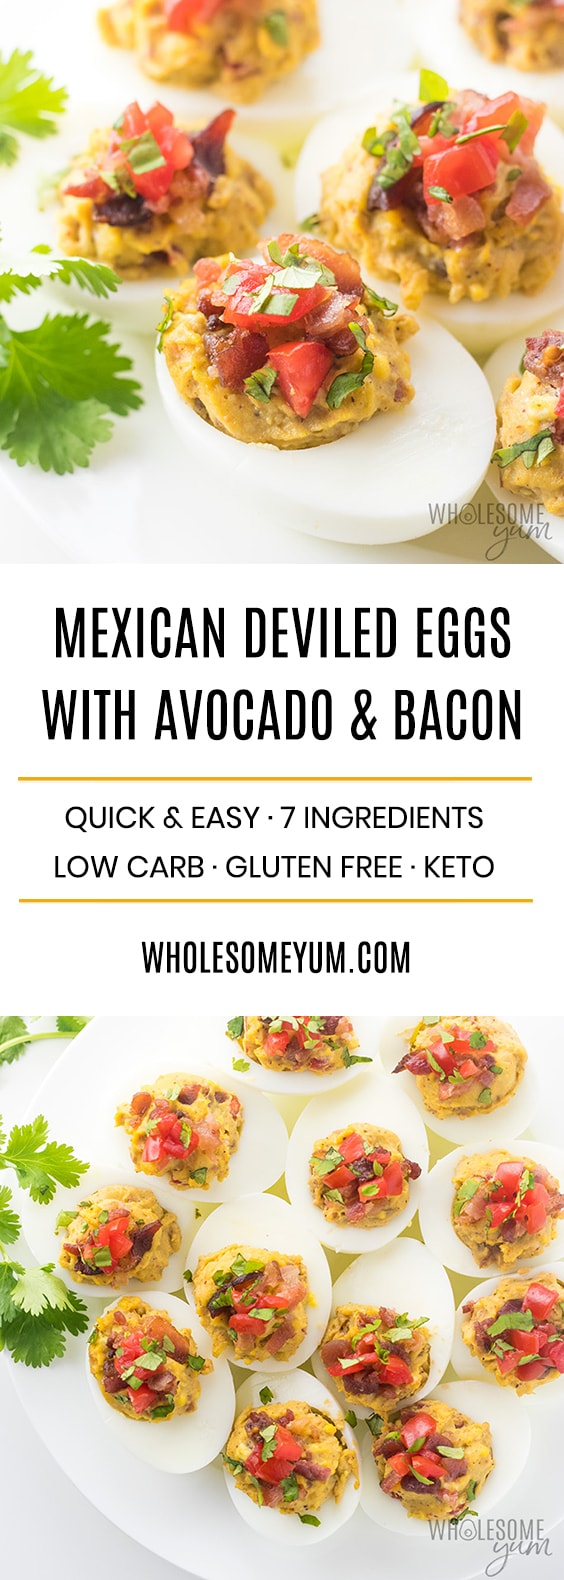 Mexican Keto Deviled Eggs Recipe with Avocado and Bacon - Mexican deviled eggs make a delicious and simple deviled egg recipe! These naturally keto deviled eggs with avocado and bacon are easy to make, with common ingredients. Such a flavorful take on avocado deviled eggs! Low carb, paleo, and gluten-free, too.